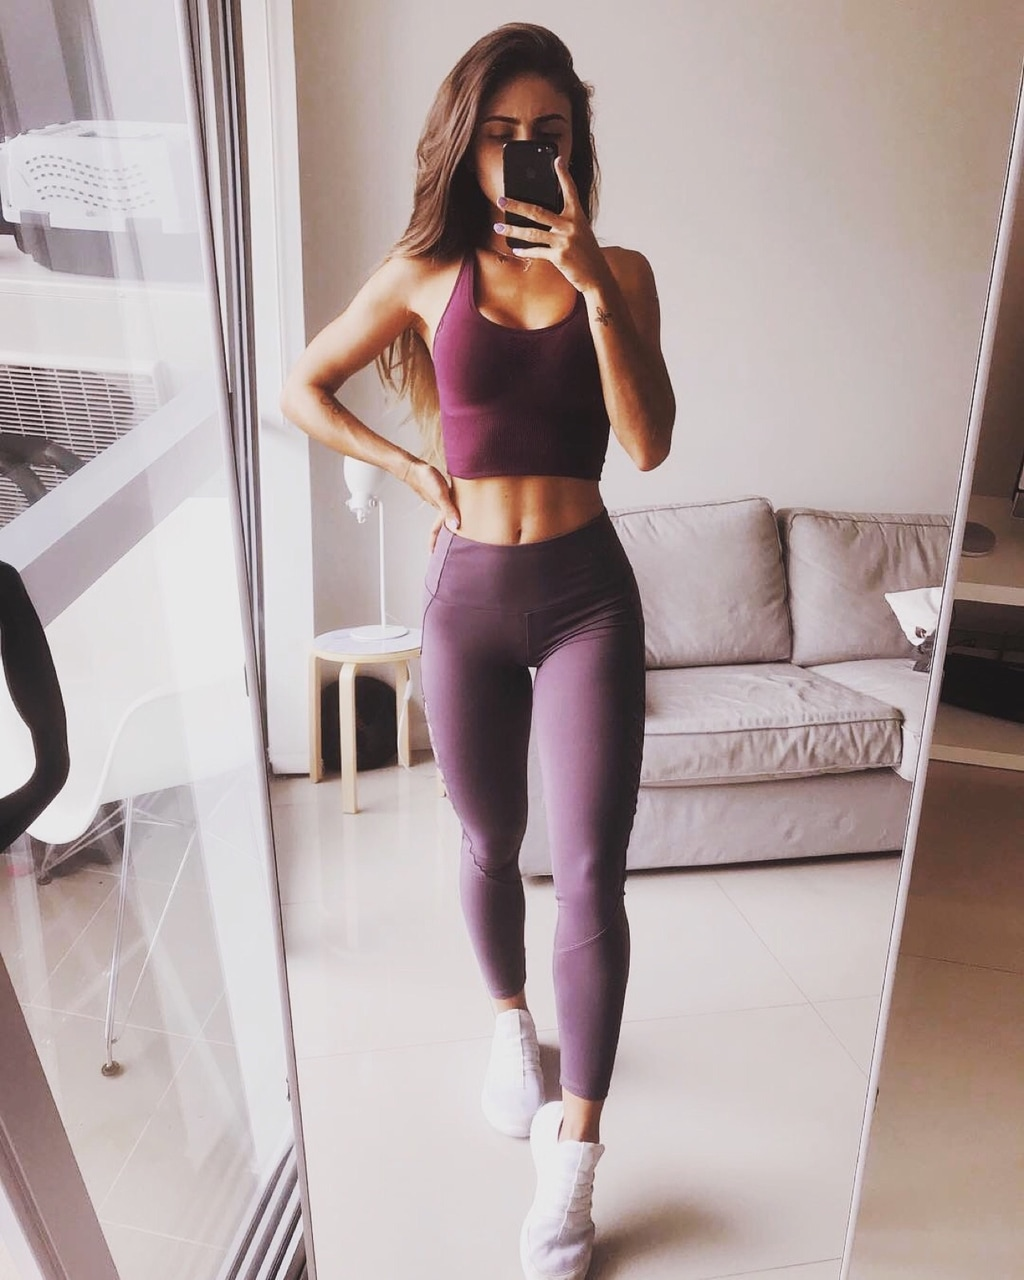 leggings, abs, fitness and gym